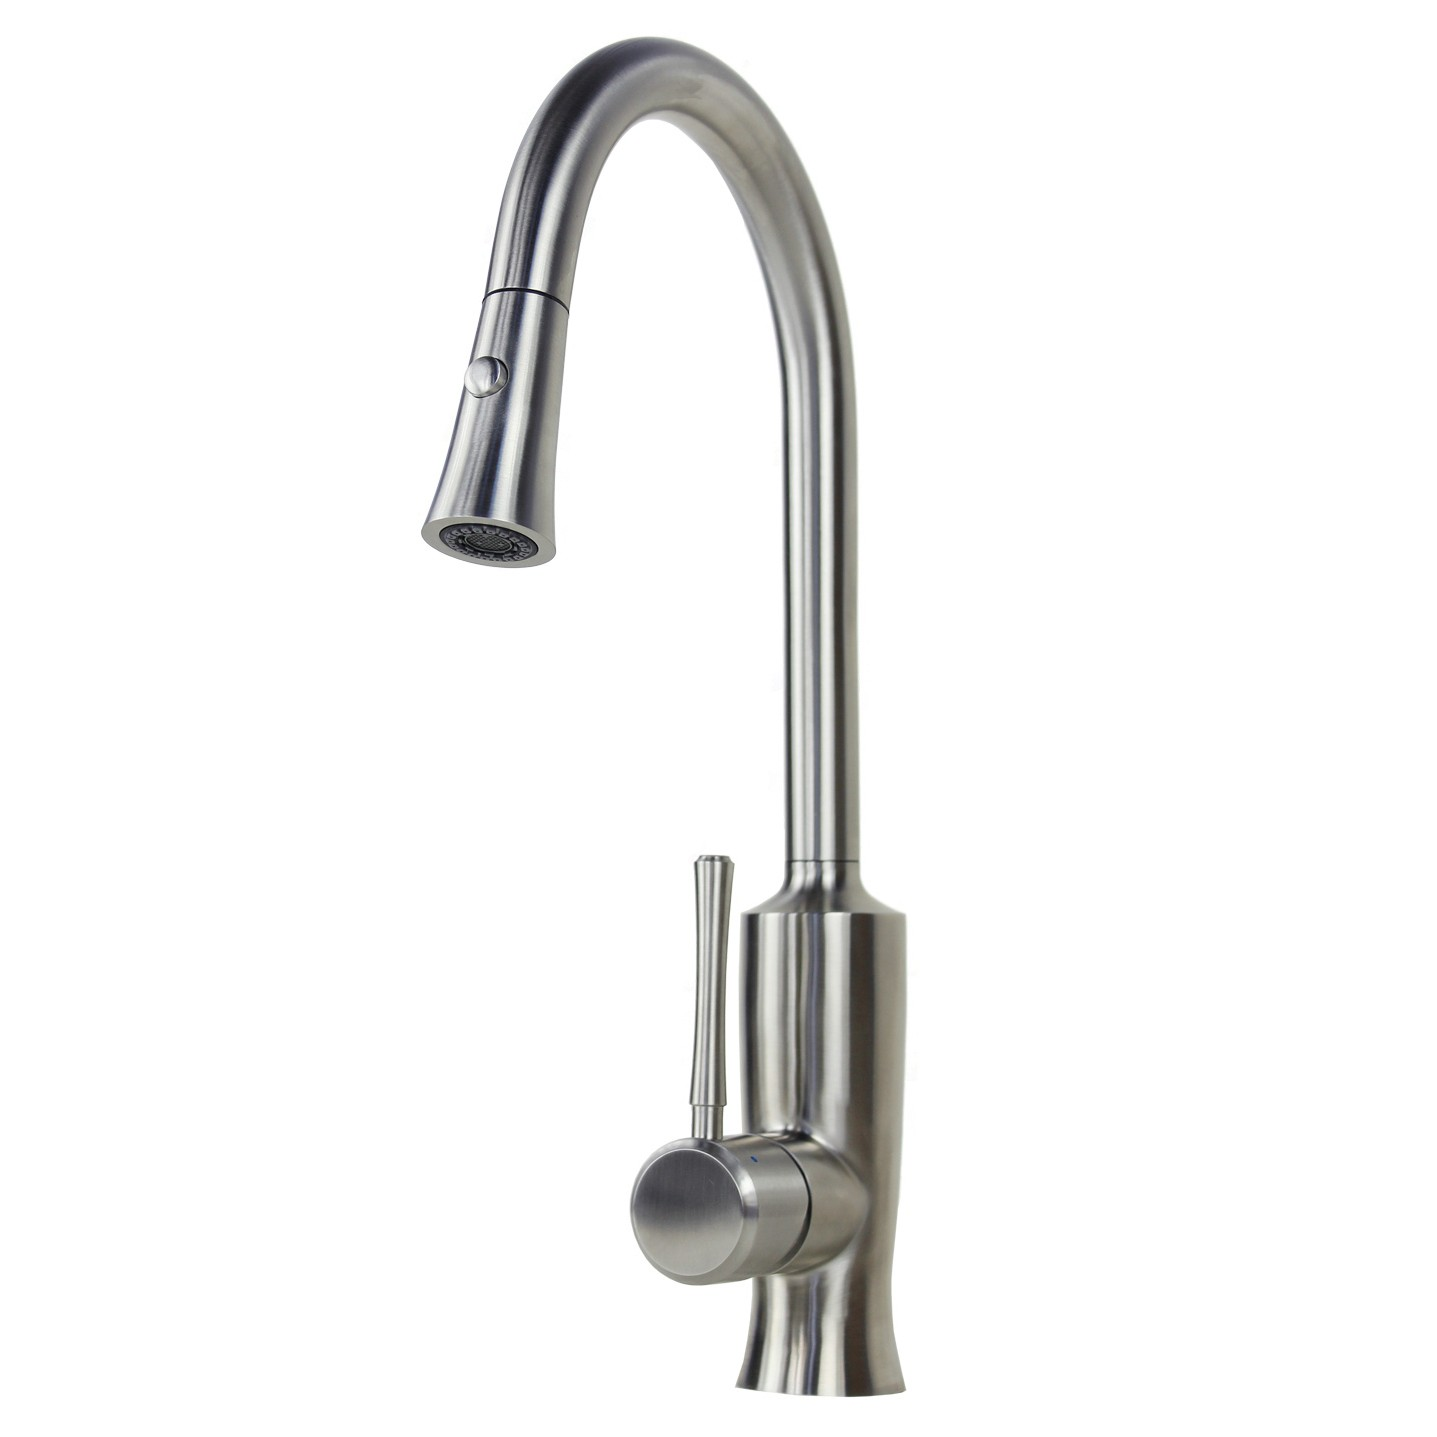 Ariel Venus Stainless Steel Lead Free Pull Out Sprayer Kitchen Faucet